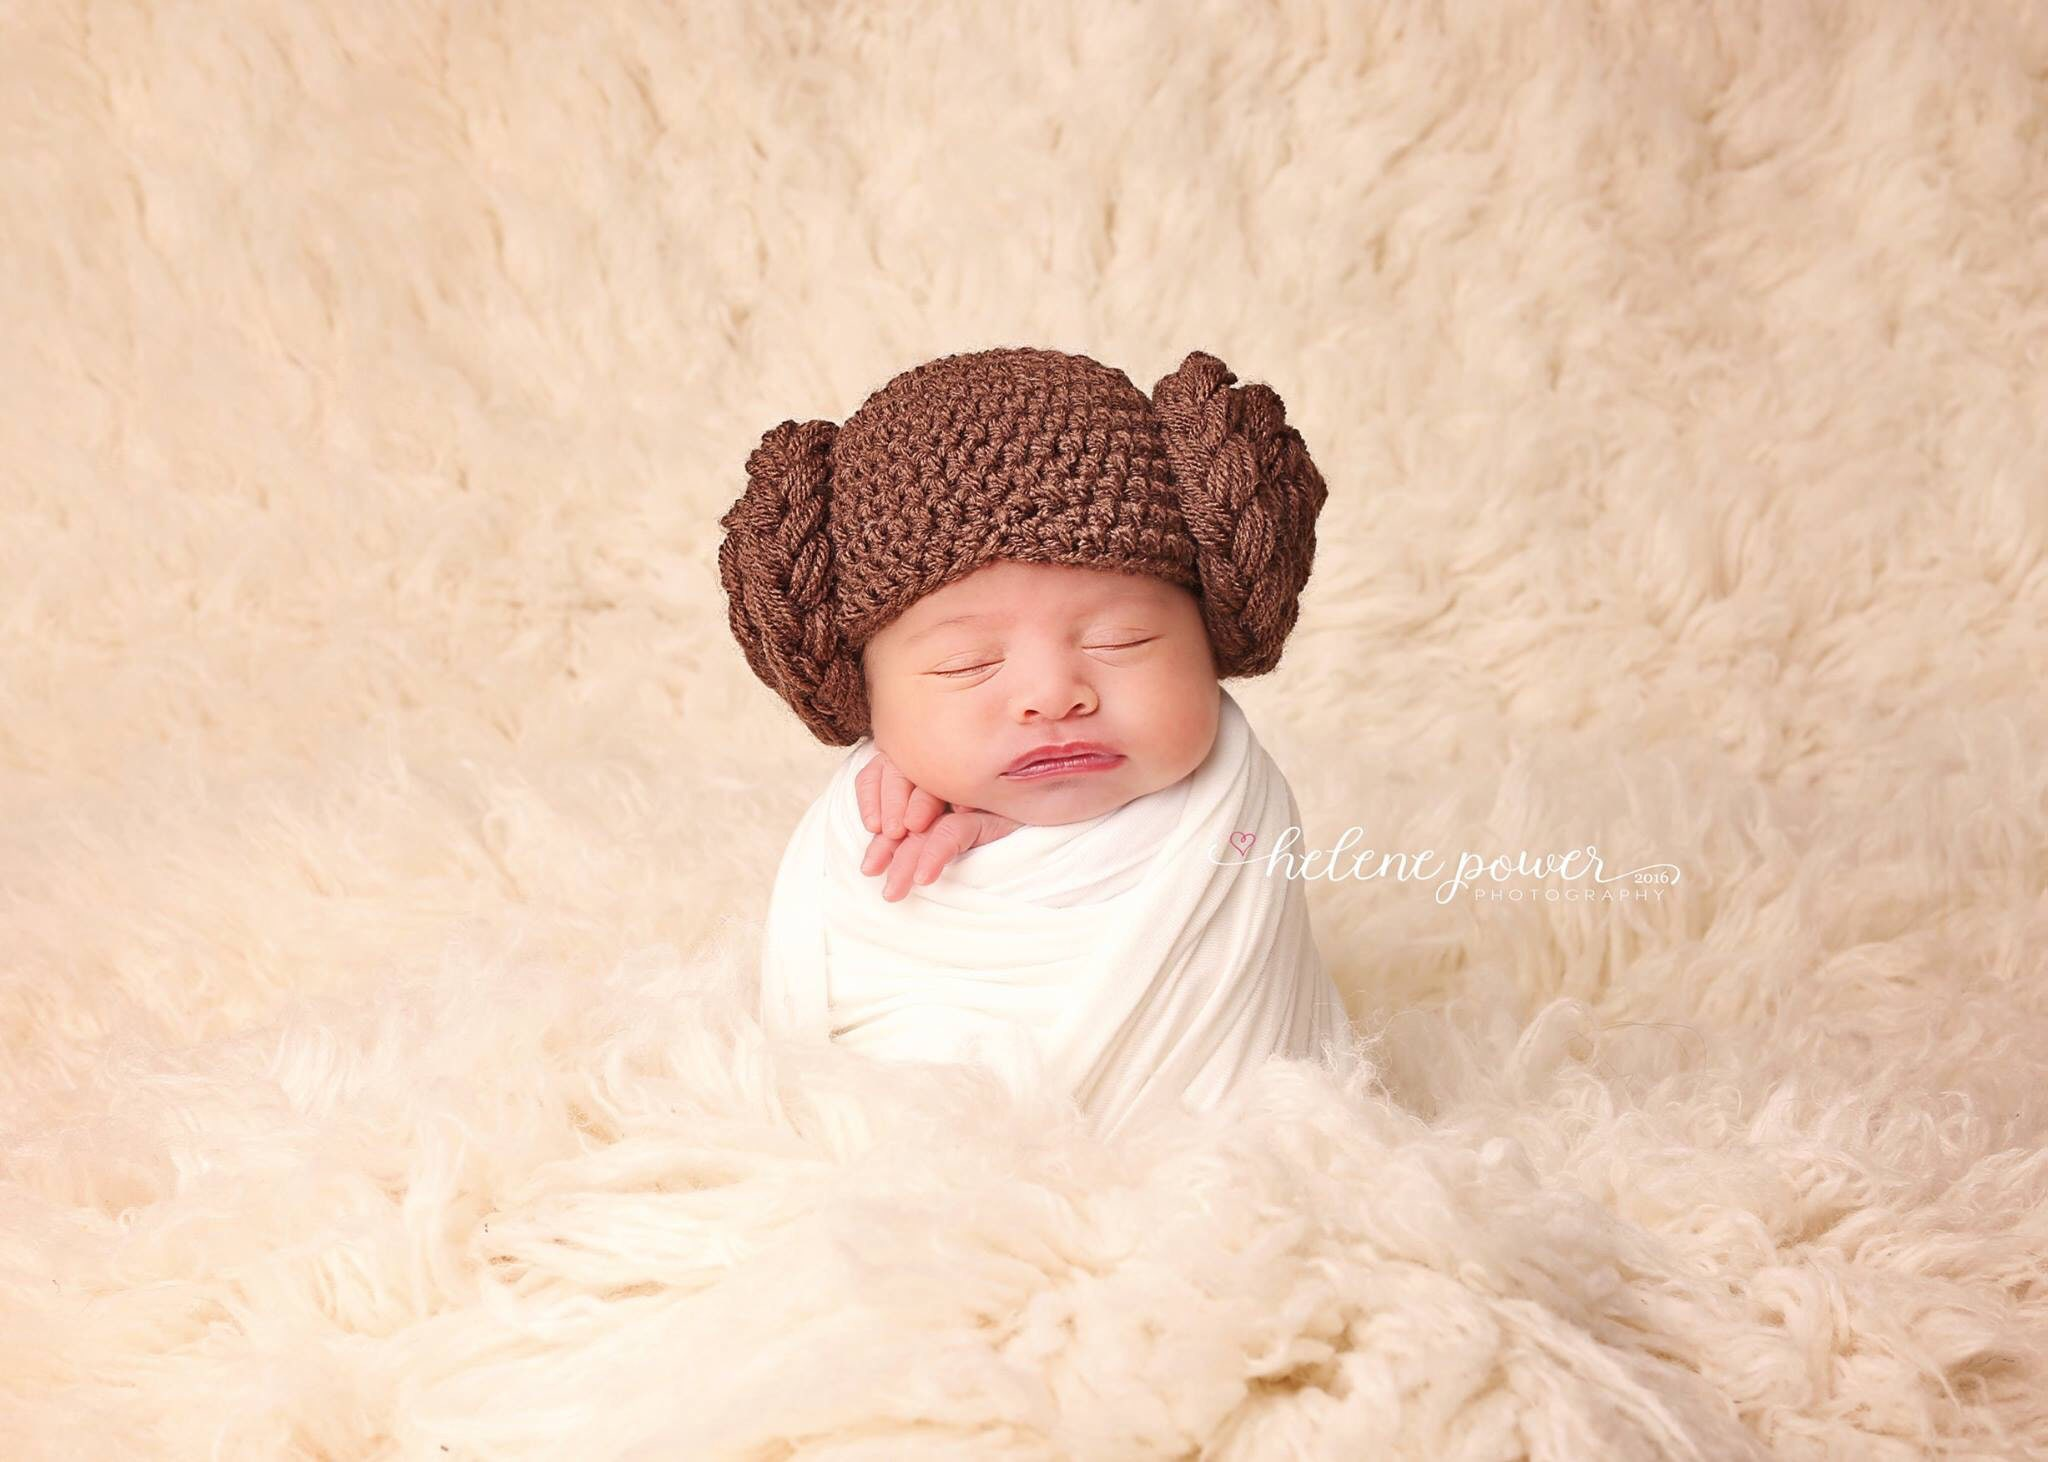 newborn photography poses guide for taking baby photos at